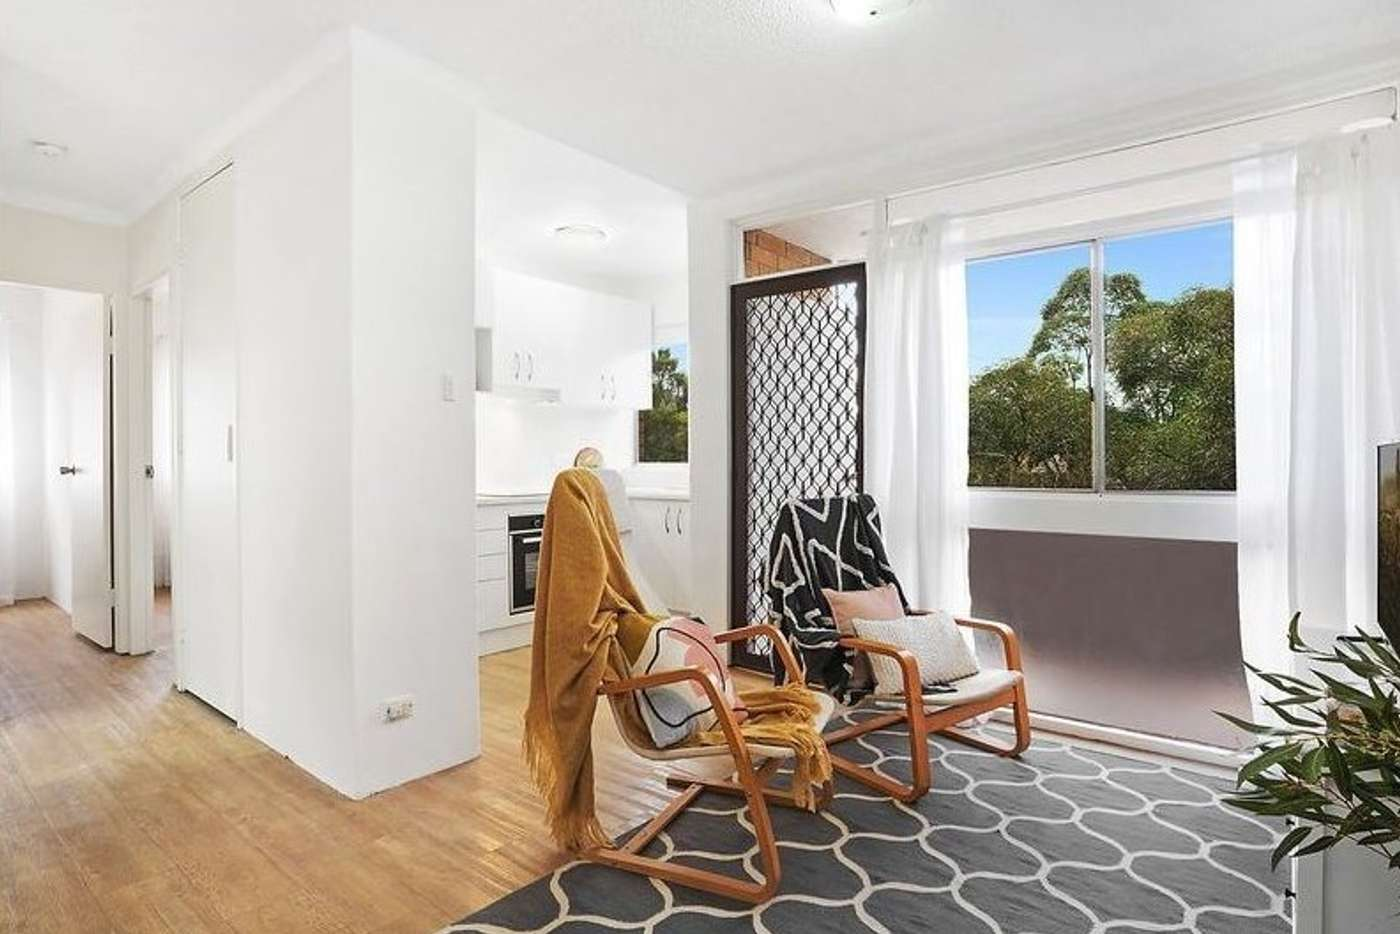 Main view of Homely apartment listing, 1/14 Maxim Street, West Ryde NSW 2114